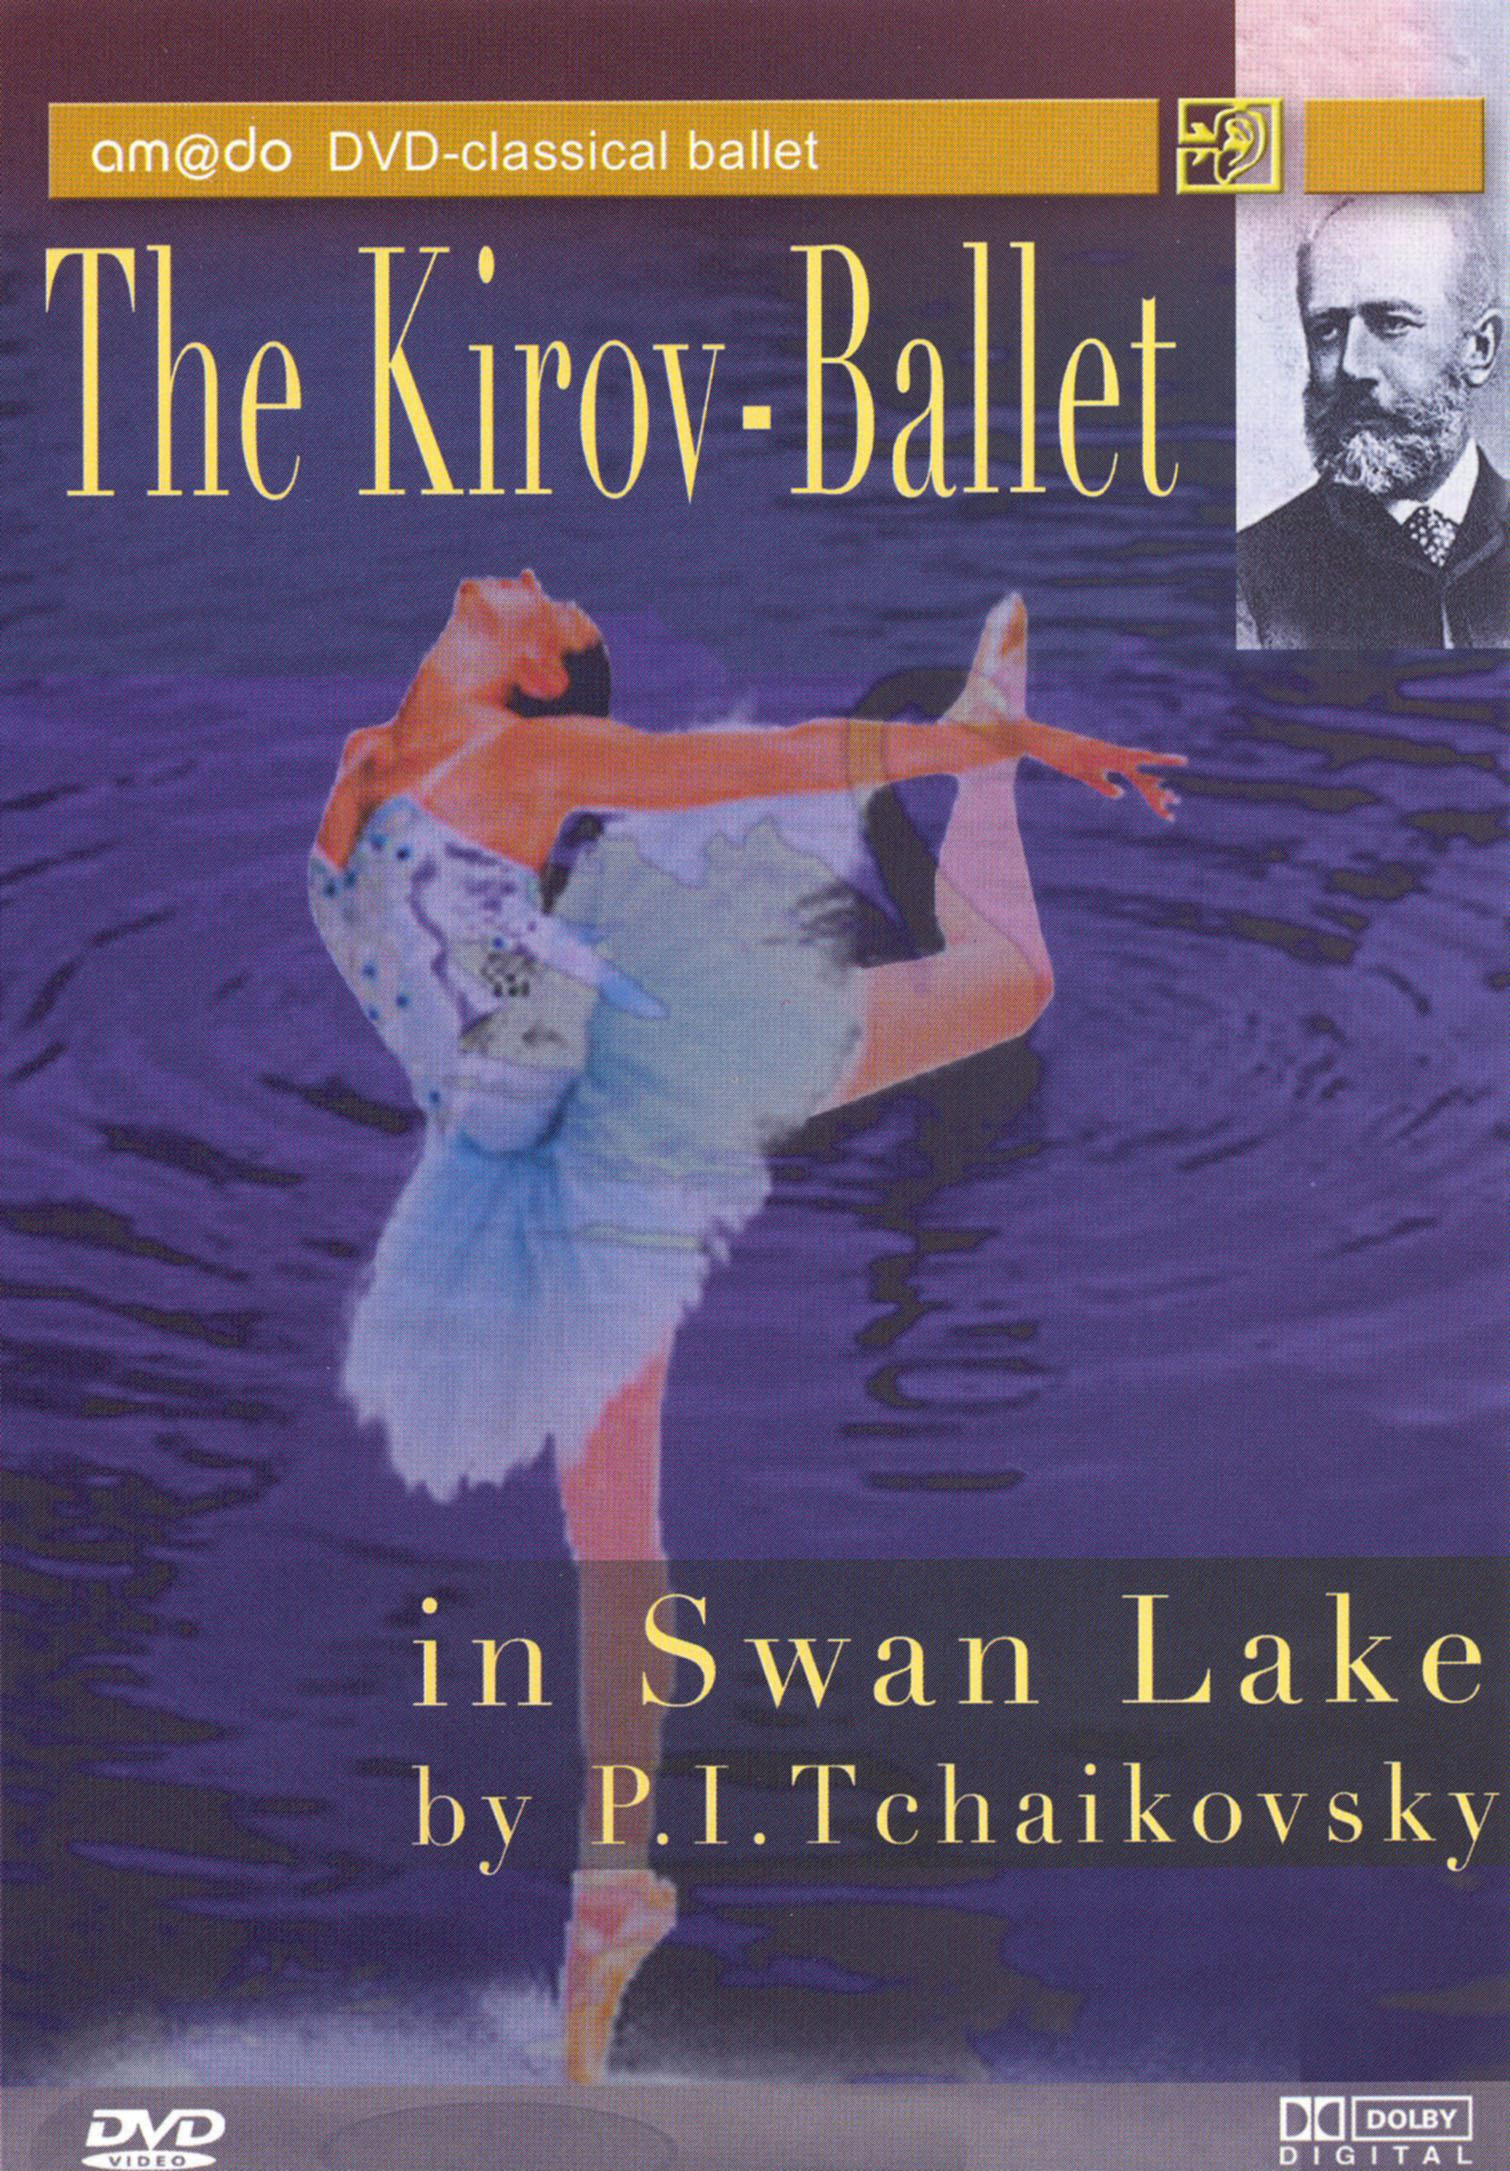 swan lake comparative essay Swan lake - romantic ballet essay swan lake - romantic ballet essay 2820 words mar 23rd, 2007 12 pages show more swan lake swan lake' was re-choreographed by.